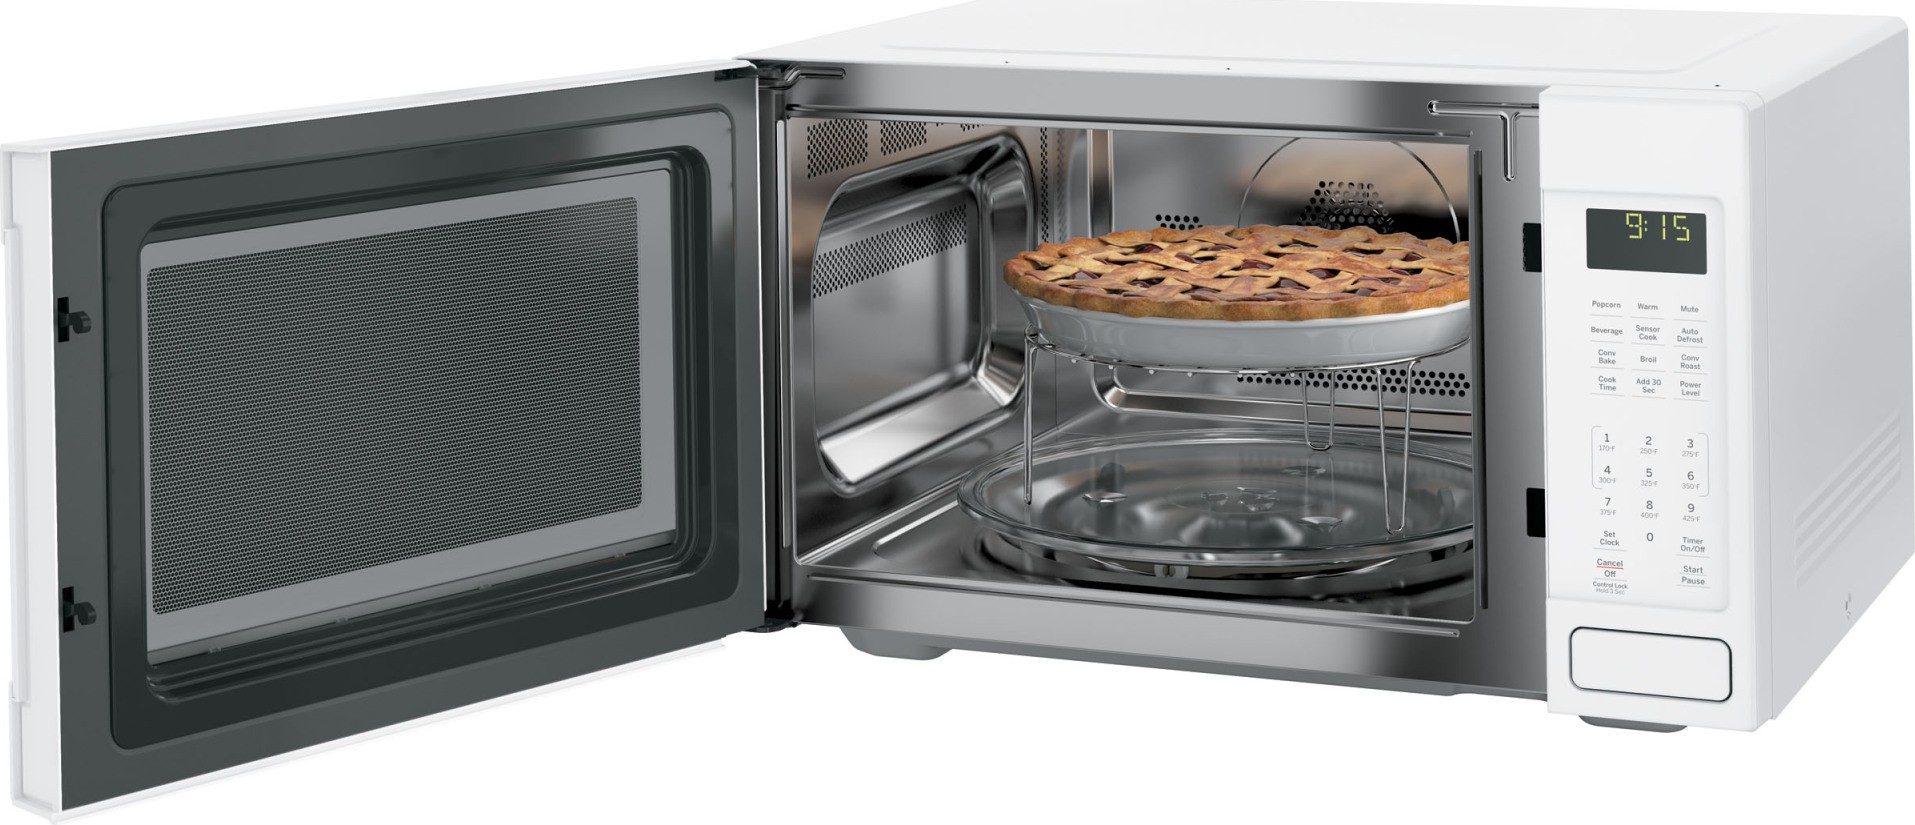 Wolf Countertop Convection Oven Reviews : Home Kitchen Appliances Cooking Microwaves GE Profile PEB9159DJWW